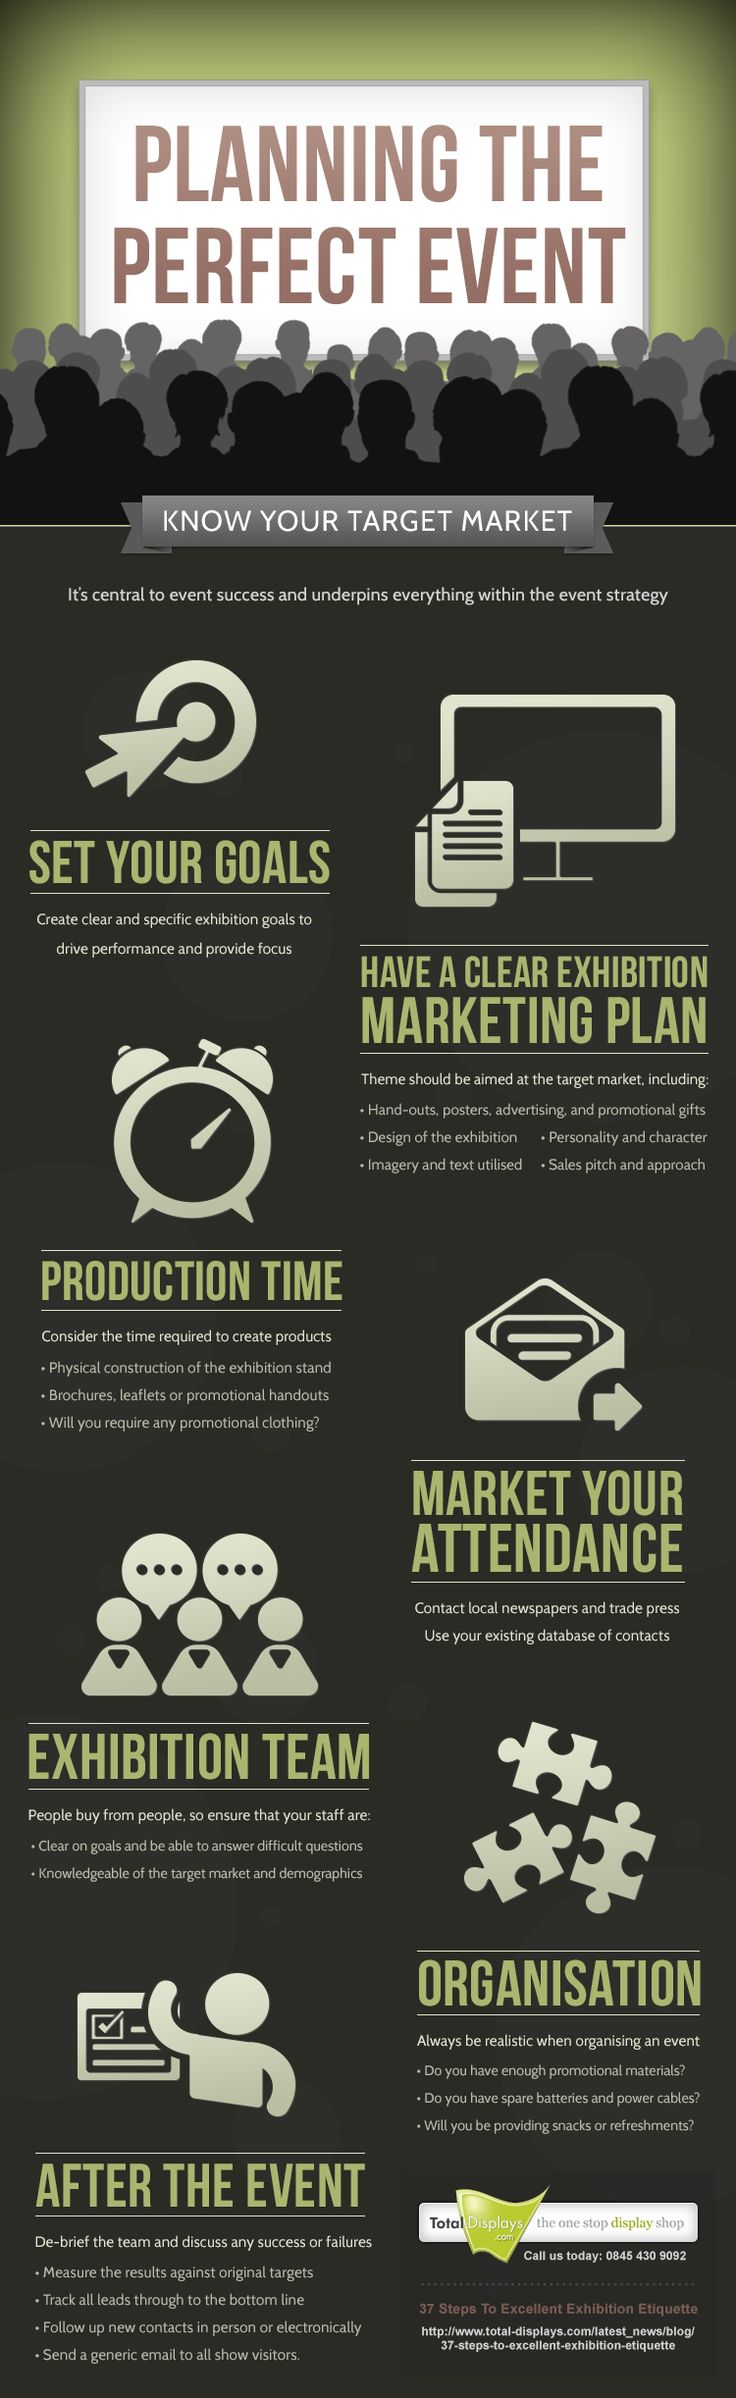 Best Expert Event Planning Tips Images On Pinterest Event - Luxury conference planning template scheme